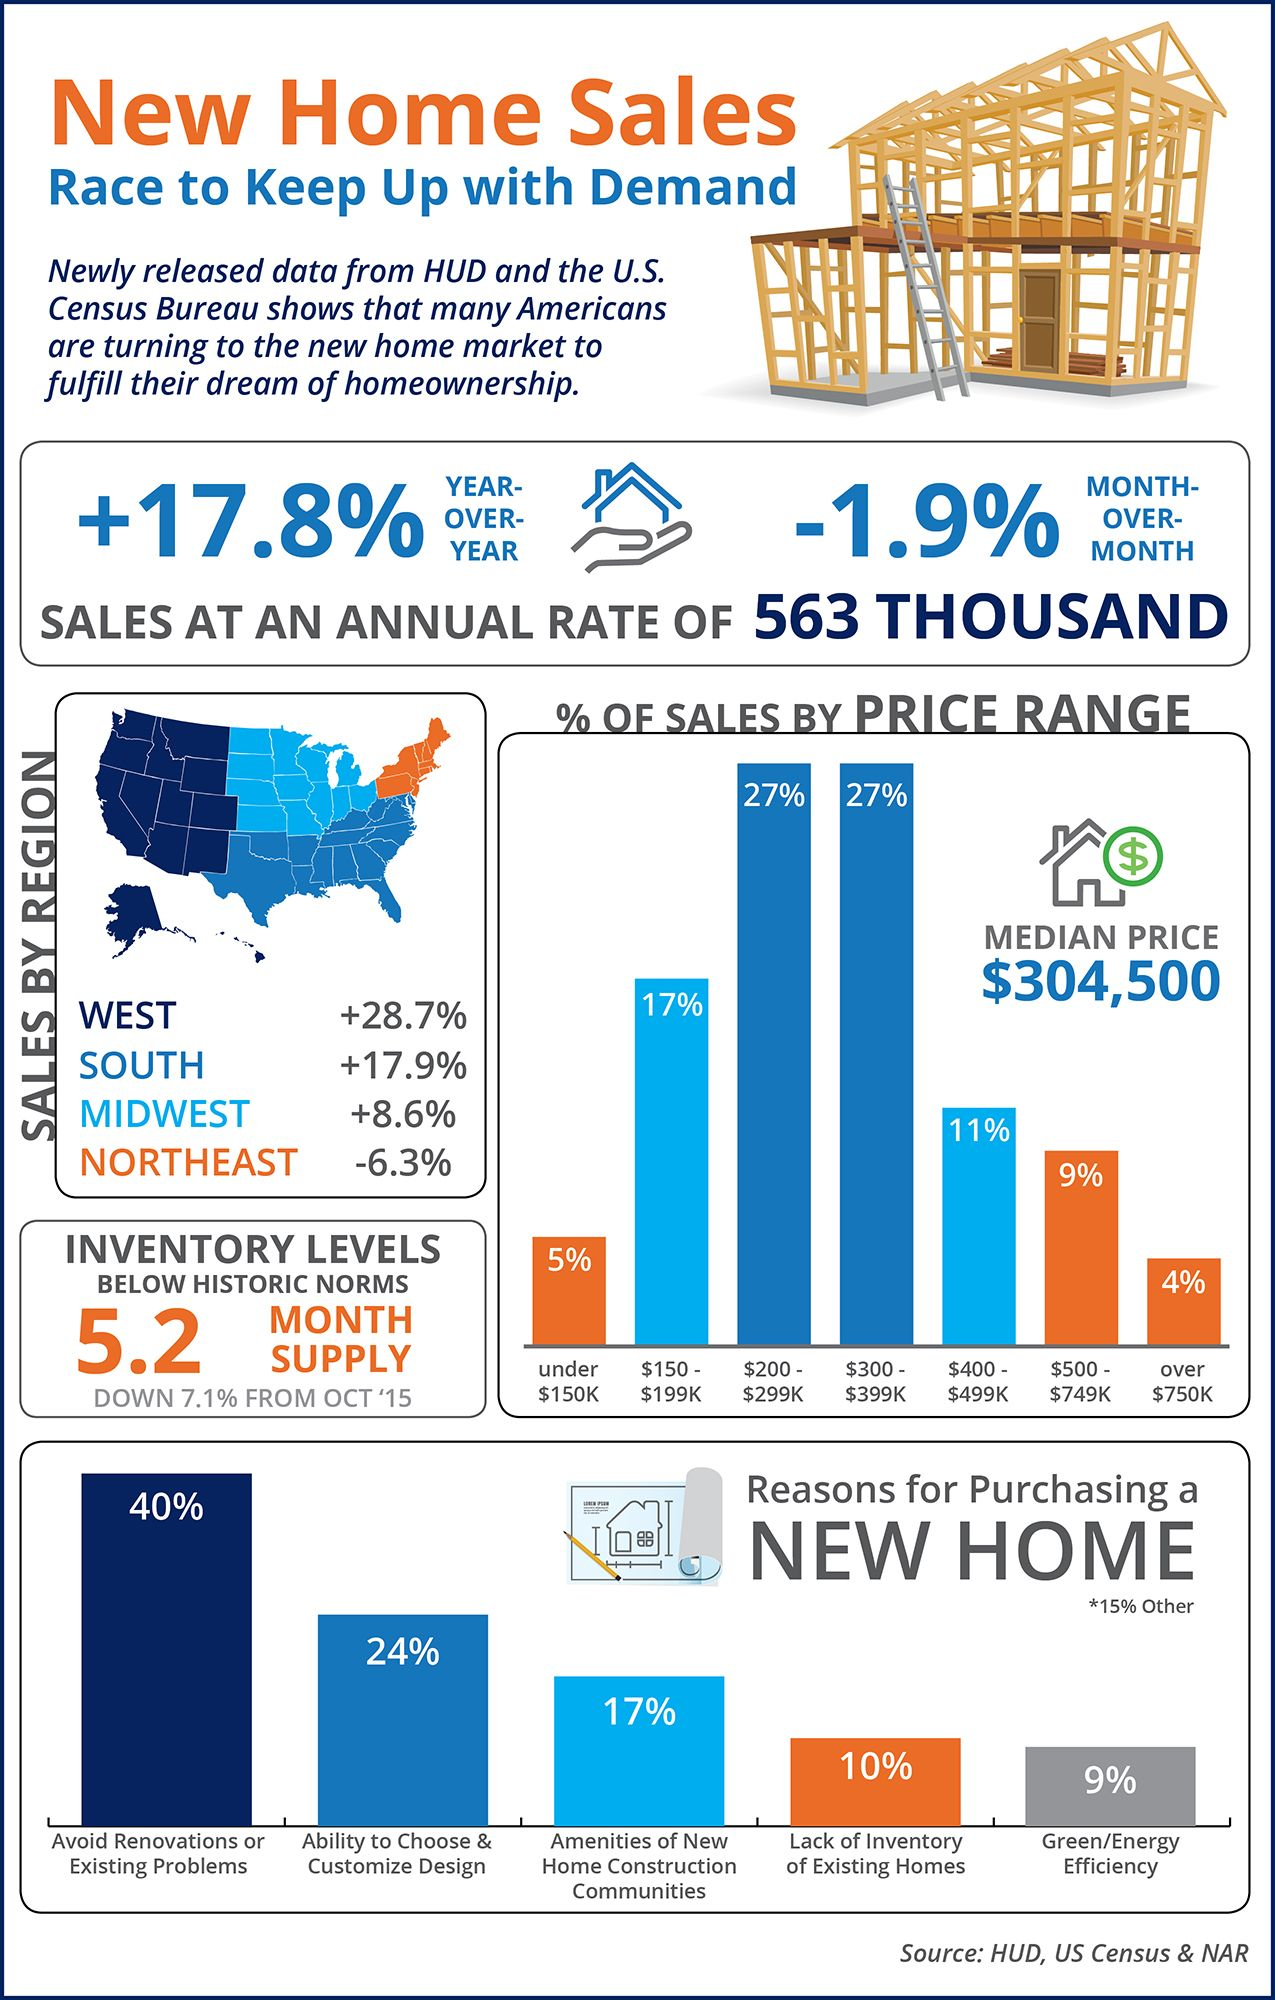 New Home Sales Race To Keep Up With Demand Infographic Simplifying The Market With Images Real Estate Trends Real Estate Infographic San Antonio Real Estate